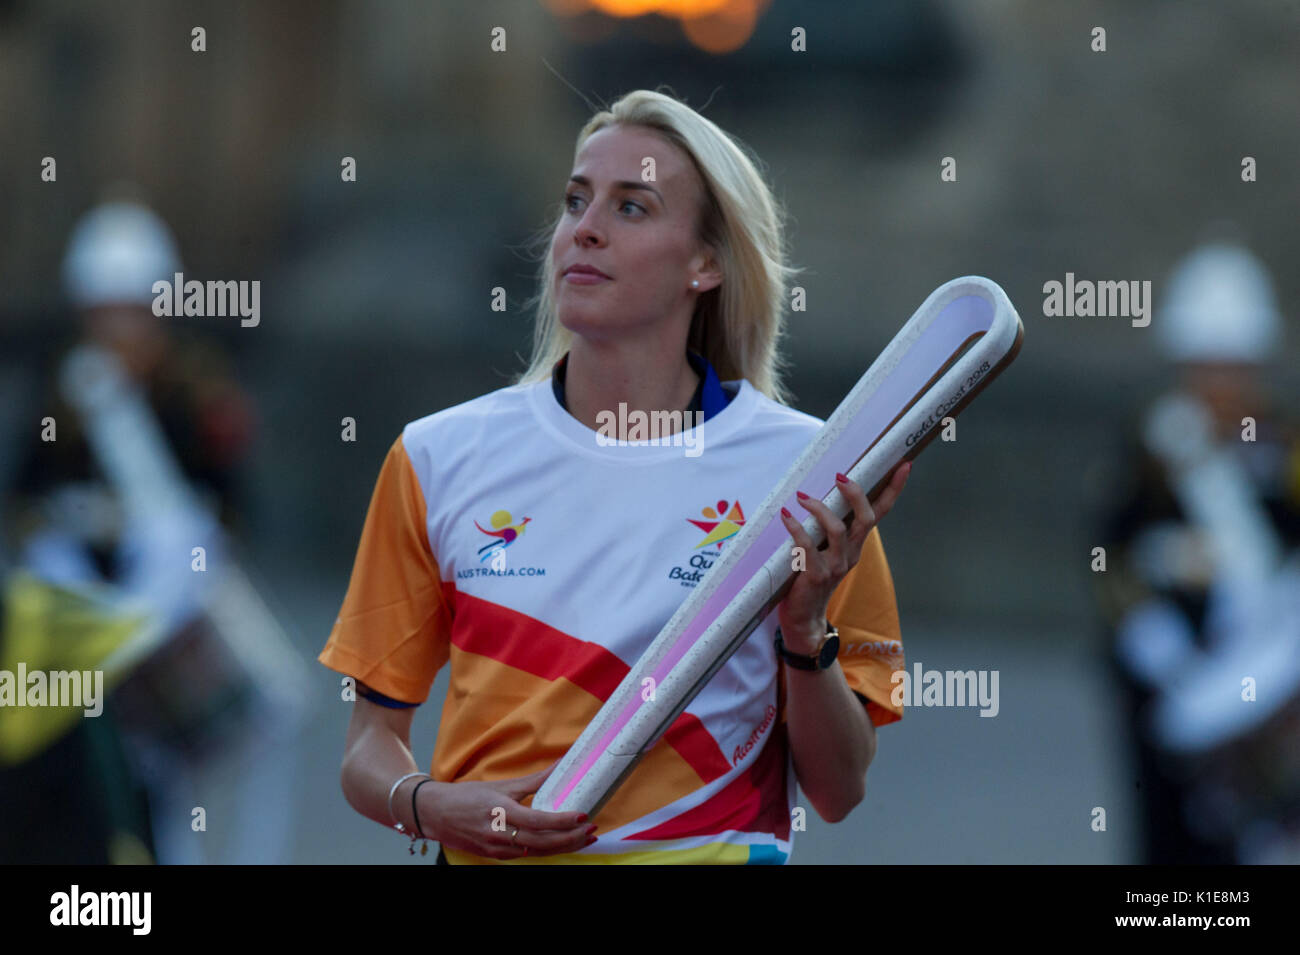 Edinburgh, UK. 26th Aug, 2017. Edinburgh UK Aug 26 2017; The Royal Edinburgh Military Tattoo welcomes Team Scotland stars Hannah Miley and Lynsey Sharp as they participate in the official handover of the Queens Baton Relay in Scotland. This is also the final night of the Tattoo. Credit: Steven Scott Taylor/Alamy Live News - Stock Image